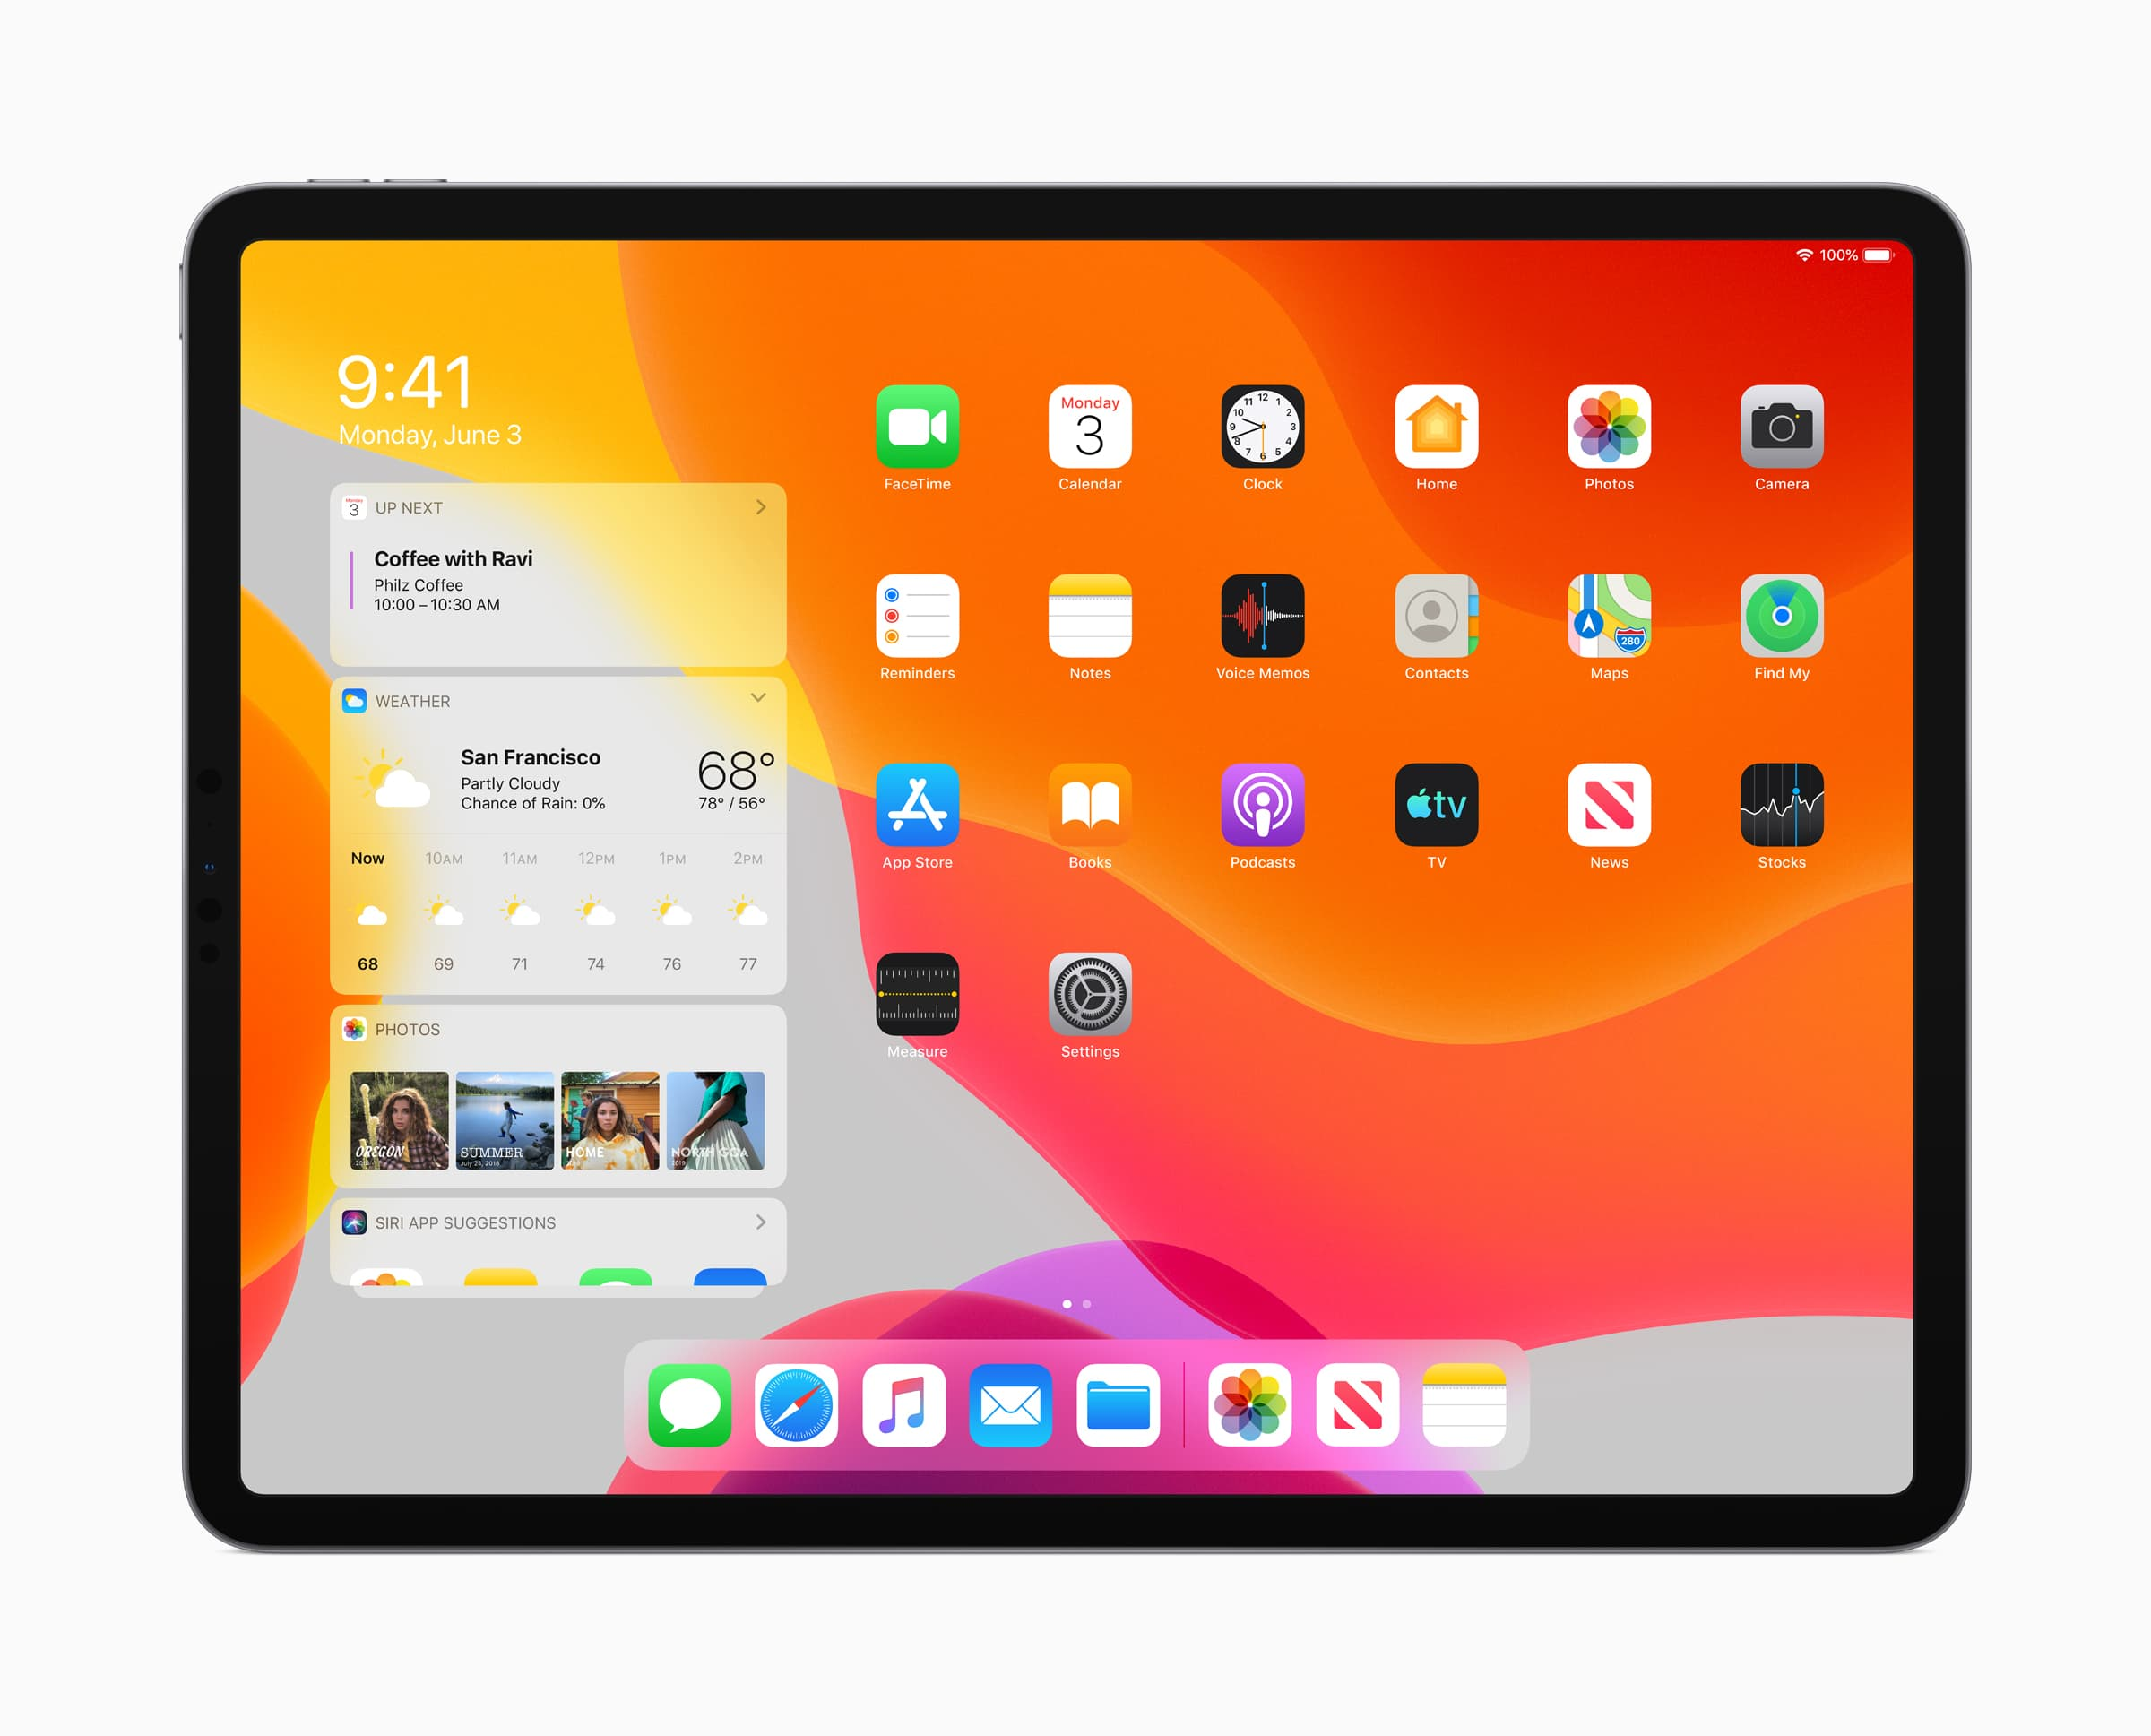 iPadOS lets you resize Home screen app icons